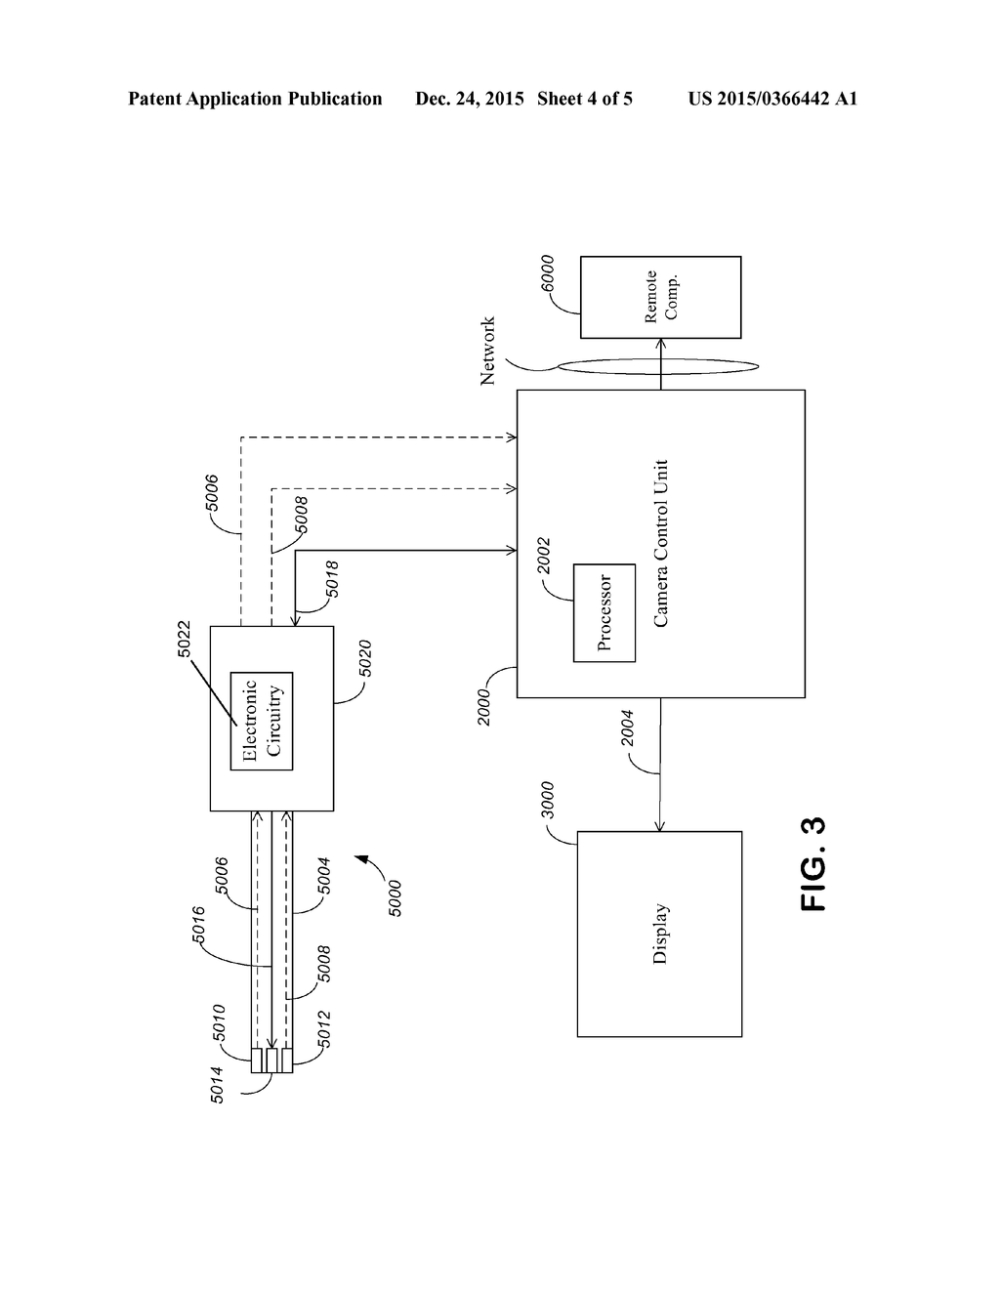 medium resolution of camera control unit with stereoscopic video recording and archive diagram schematic and image 05